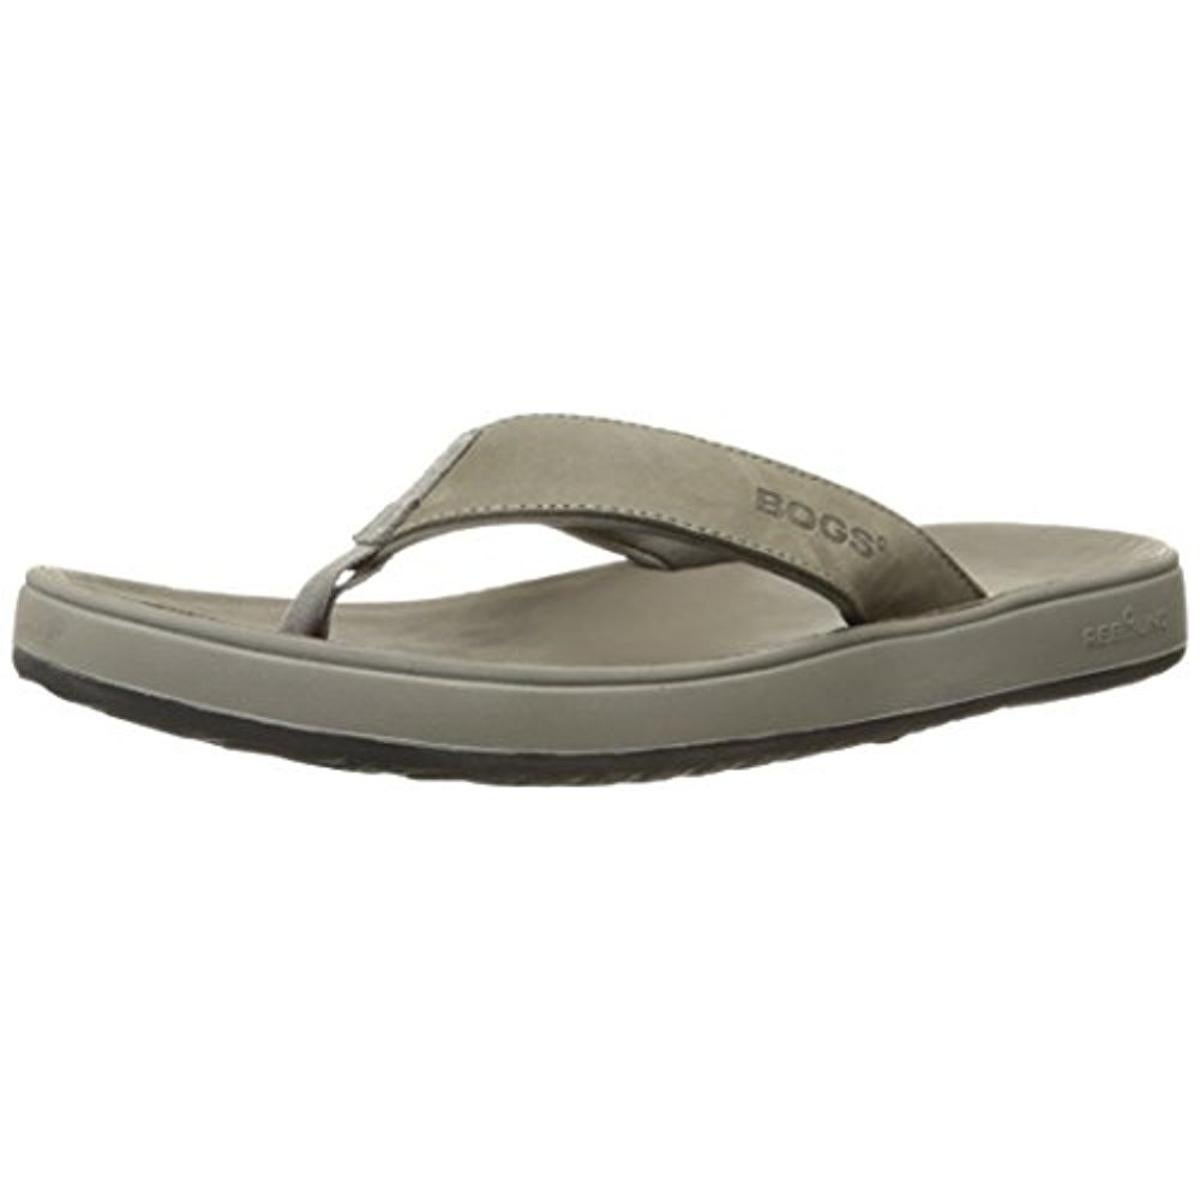 03c709020a54 Shop Bogs Mens Hudson II Flip-Flops Leather Thong - Free Shipping On Orders  Over  45 - Overstock.com - 13299839